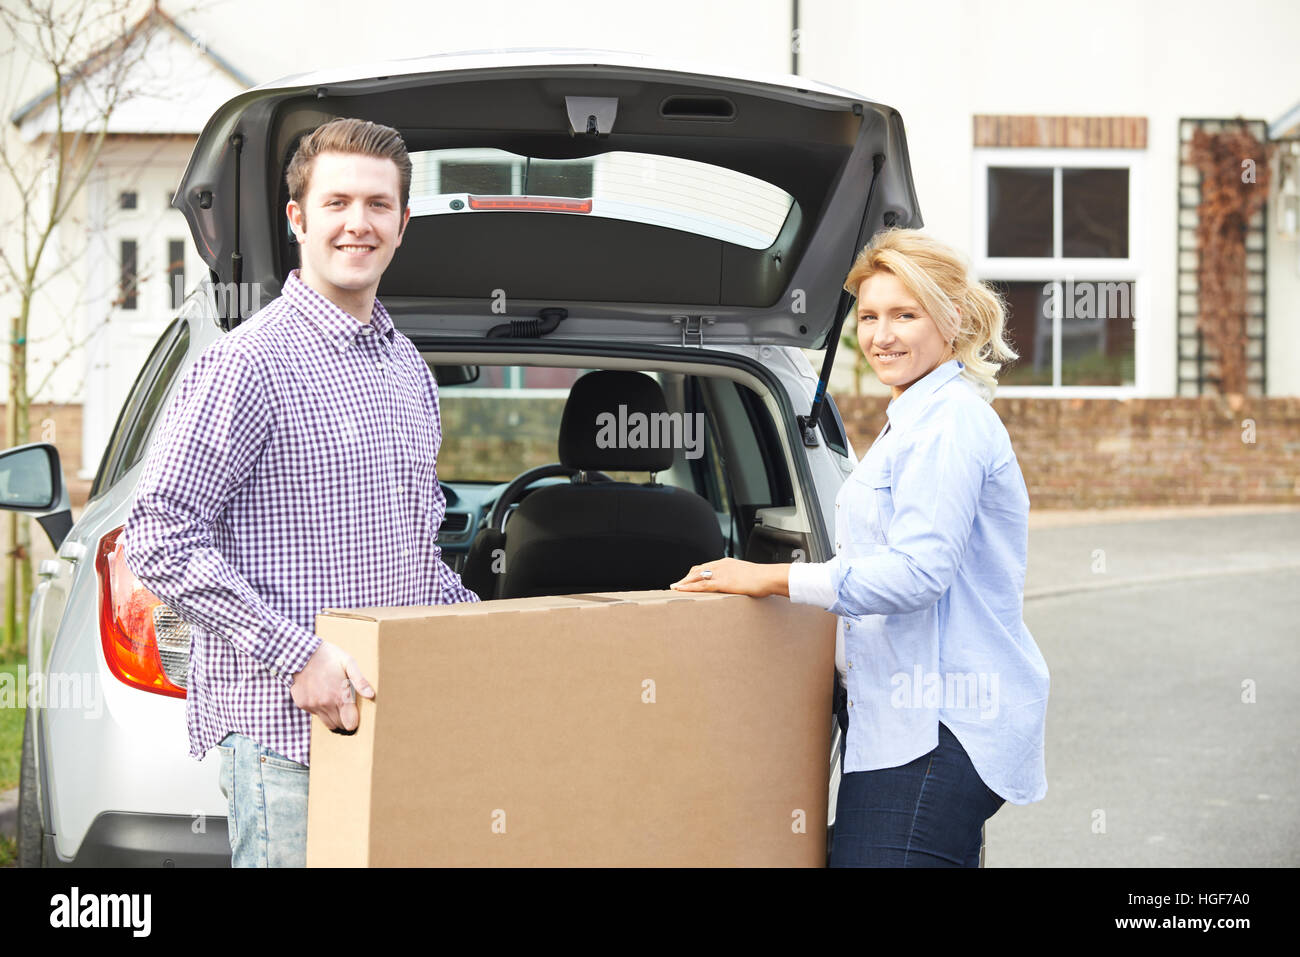 Couple Unloading New Television From Car Trunk - Stock Image